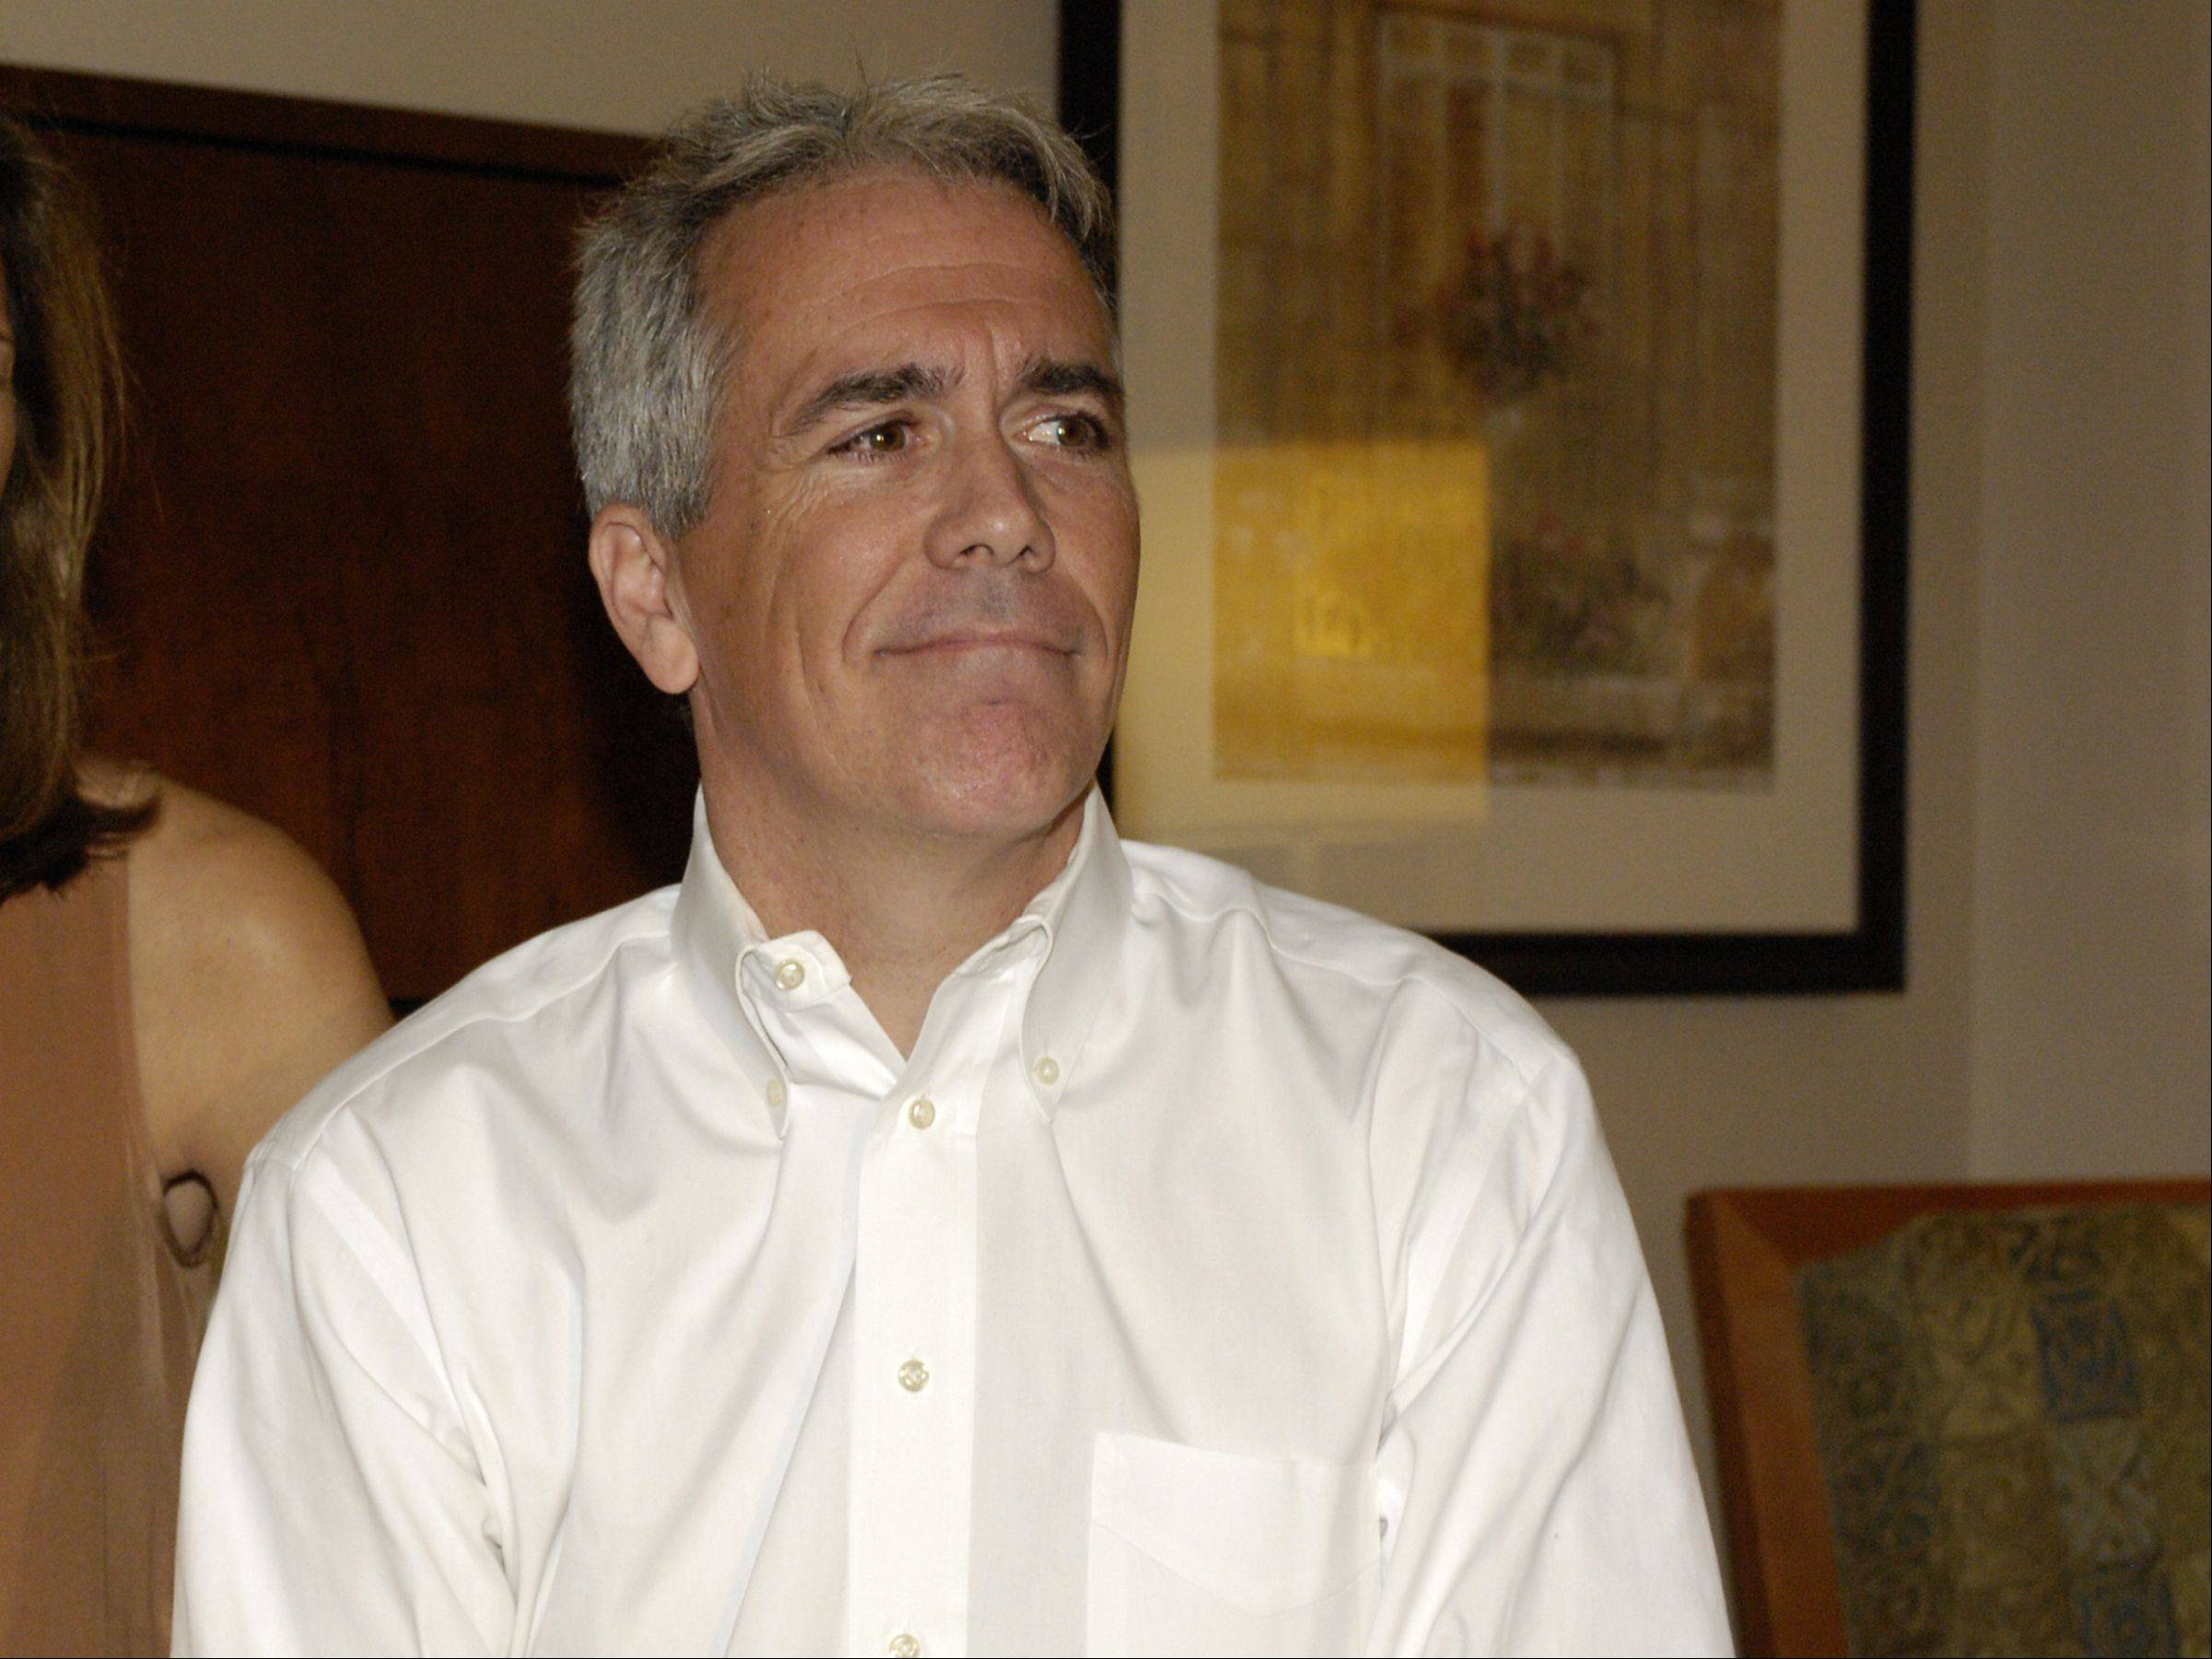 8th District Congressman Joe Walsh watches election returns with his family at the Hilton Garden Inn in Addison. Walsh lost to challenger Tammy Duckworth.